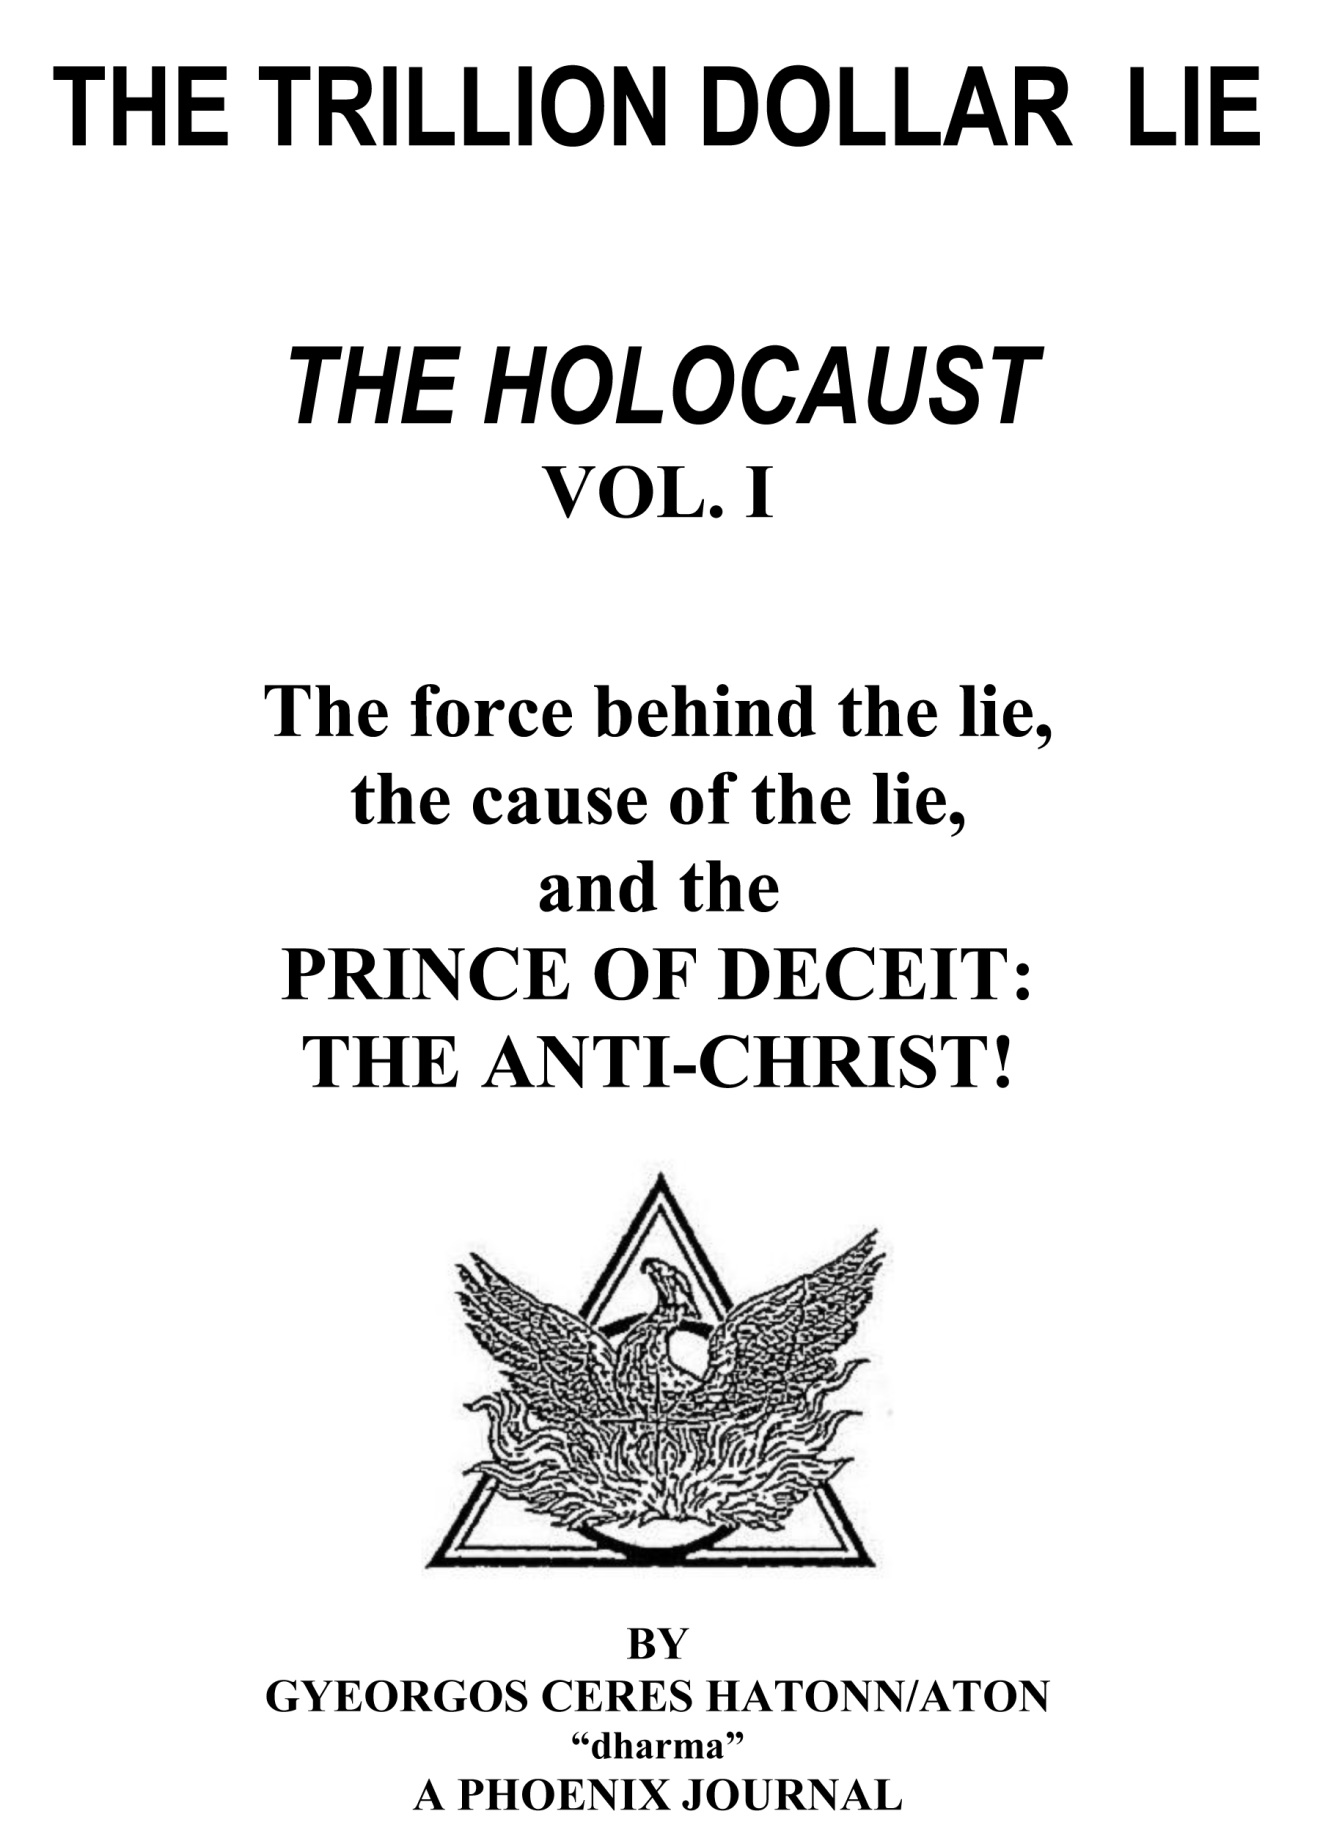 Image result for the trillion dollar lie the holocaust